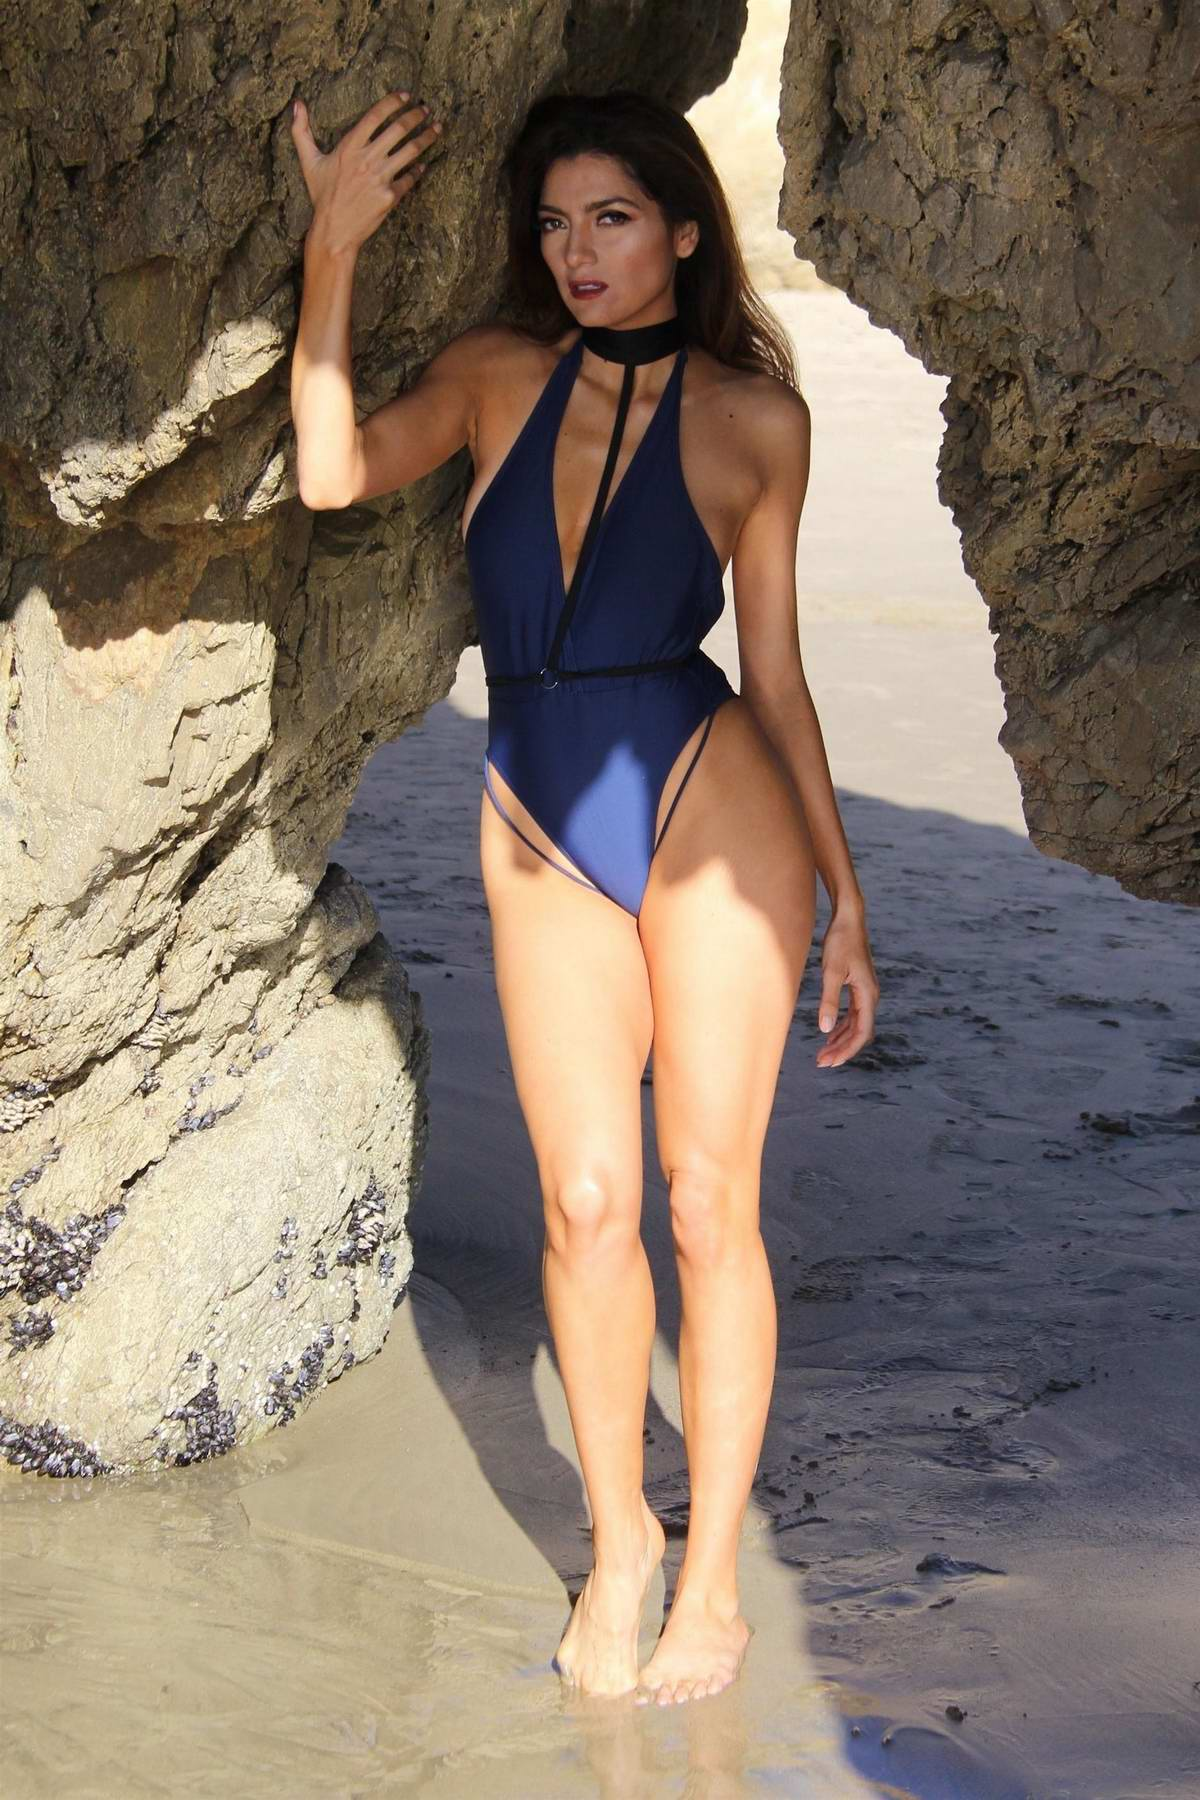 Blanca Blanco posing in a blue swimsuit during a photoshoot on the beach in Malibu, California